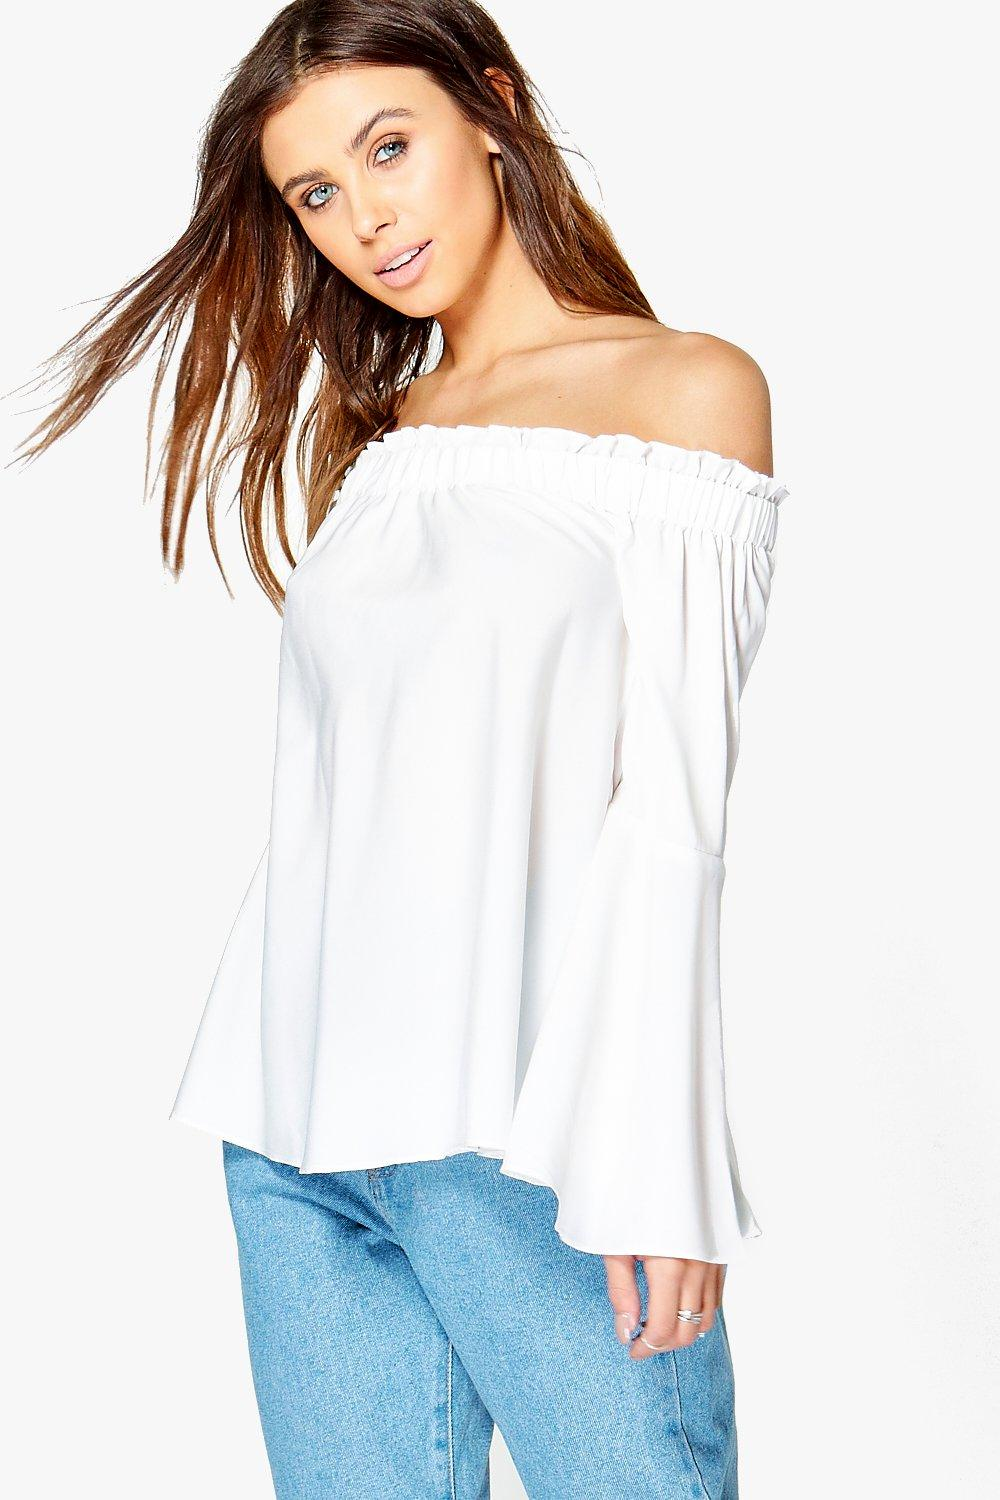 Petite Fifi Woven Frill Off The Shoulder Top